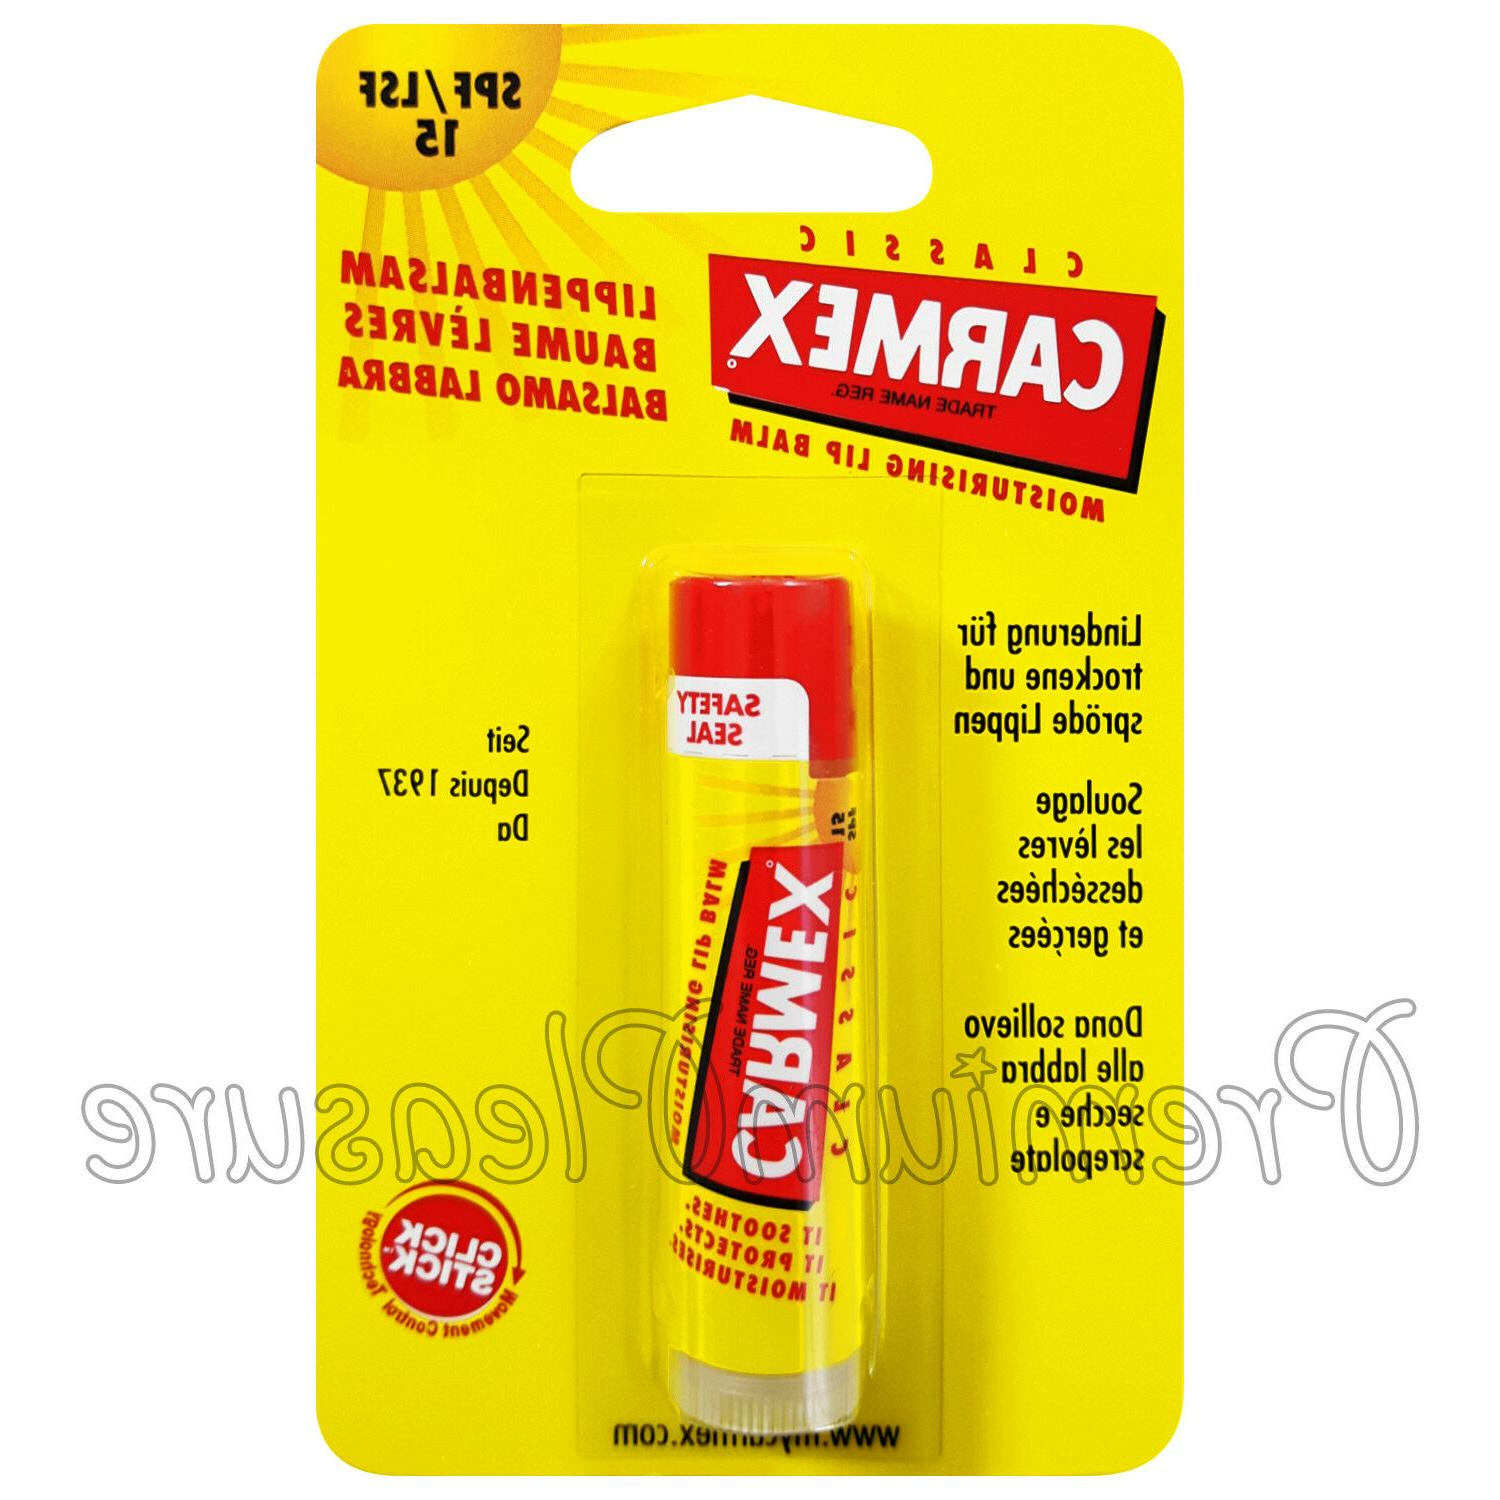 Carmex 4.9ml/0.16oz in